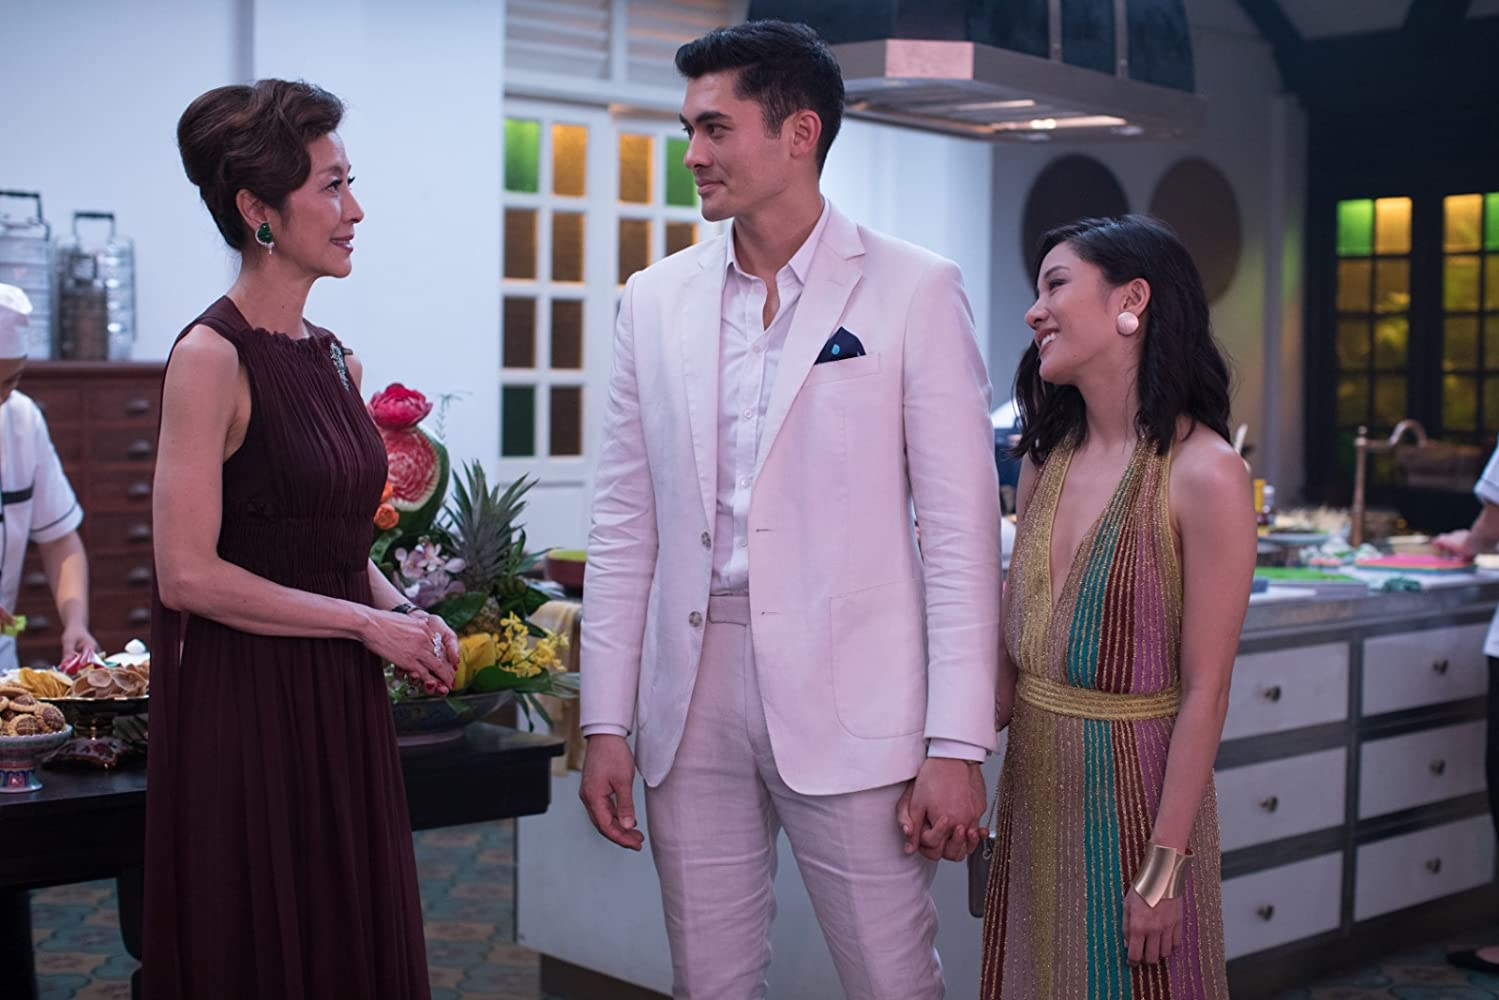 Michelle Yeoh, Constance Wu, and Henry Golding in Crazy Rich Asians (2018)